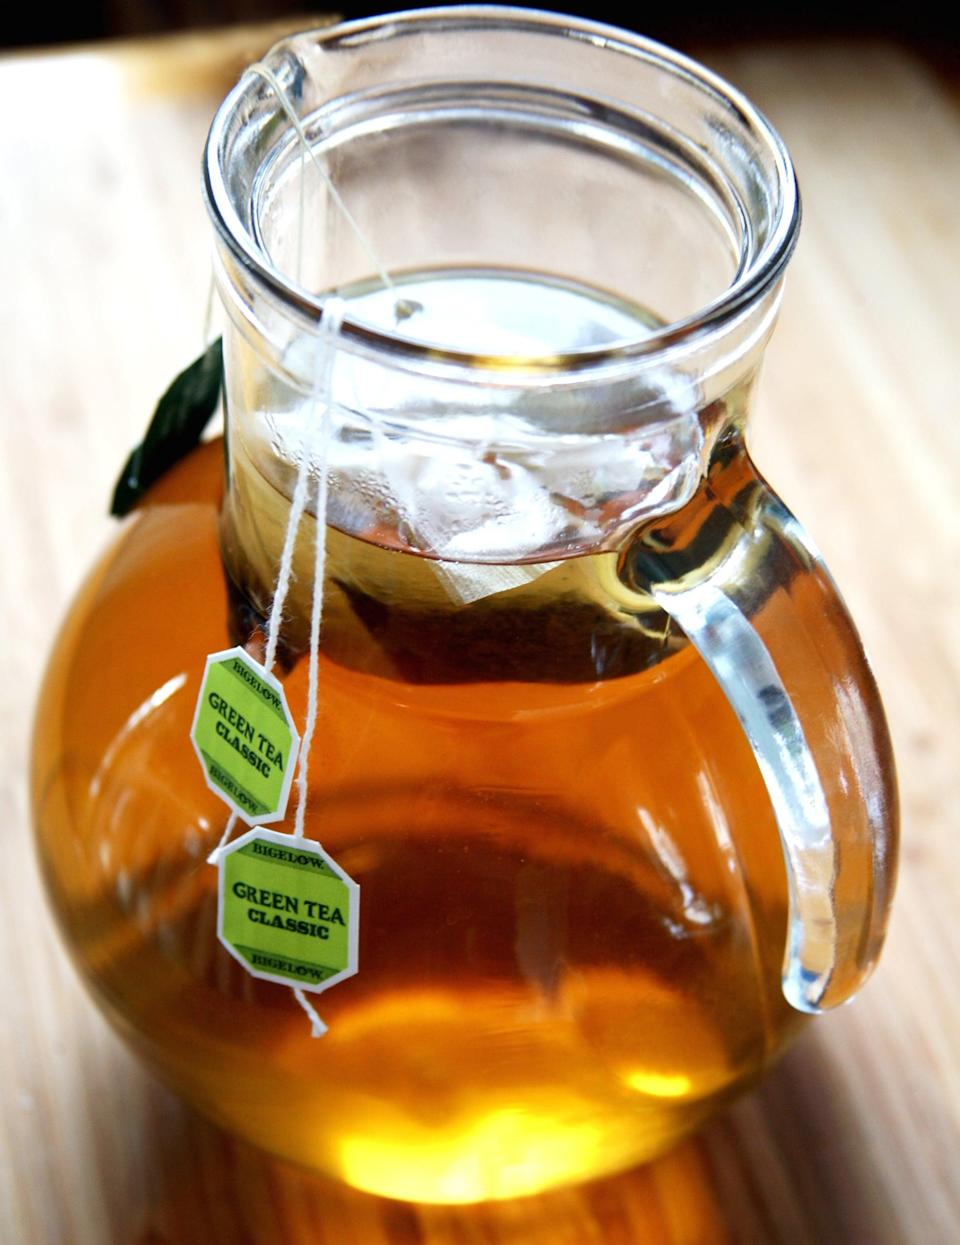 """<p>Water's not the only metabolism booster in town. Studies have shown that drinking <a href=""""https://www.popsugar.com/fitness/Tea-Helps-You-Lose-Weight-25879117"""" class=""""link rapid-noclick-resp"""" rel=""""nofollow noopener"""" target=""""_blank"""" data-ylk=""""slk:green tea can give your metabolism a tiny increase"""">green tea can give your metabolism a tiny increase</a> - it may not move the scale a whole lot, but it could add up at the end of the week or month. Not only that, but the beverage has got some major antioxidant power and can keep you hydrated and full, so drink up! </p>"""